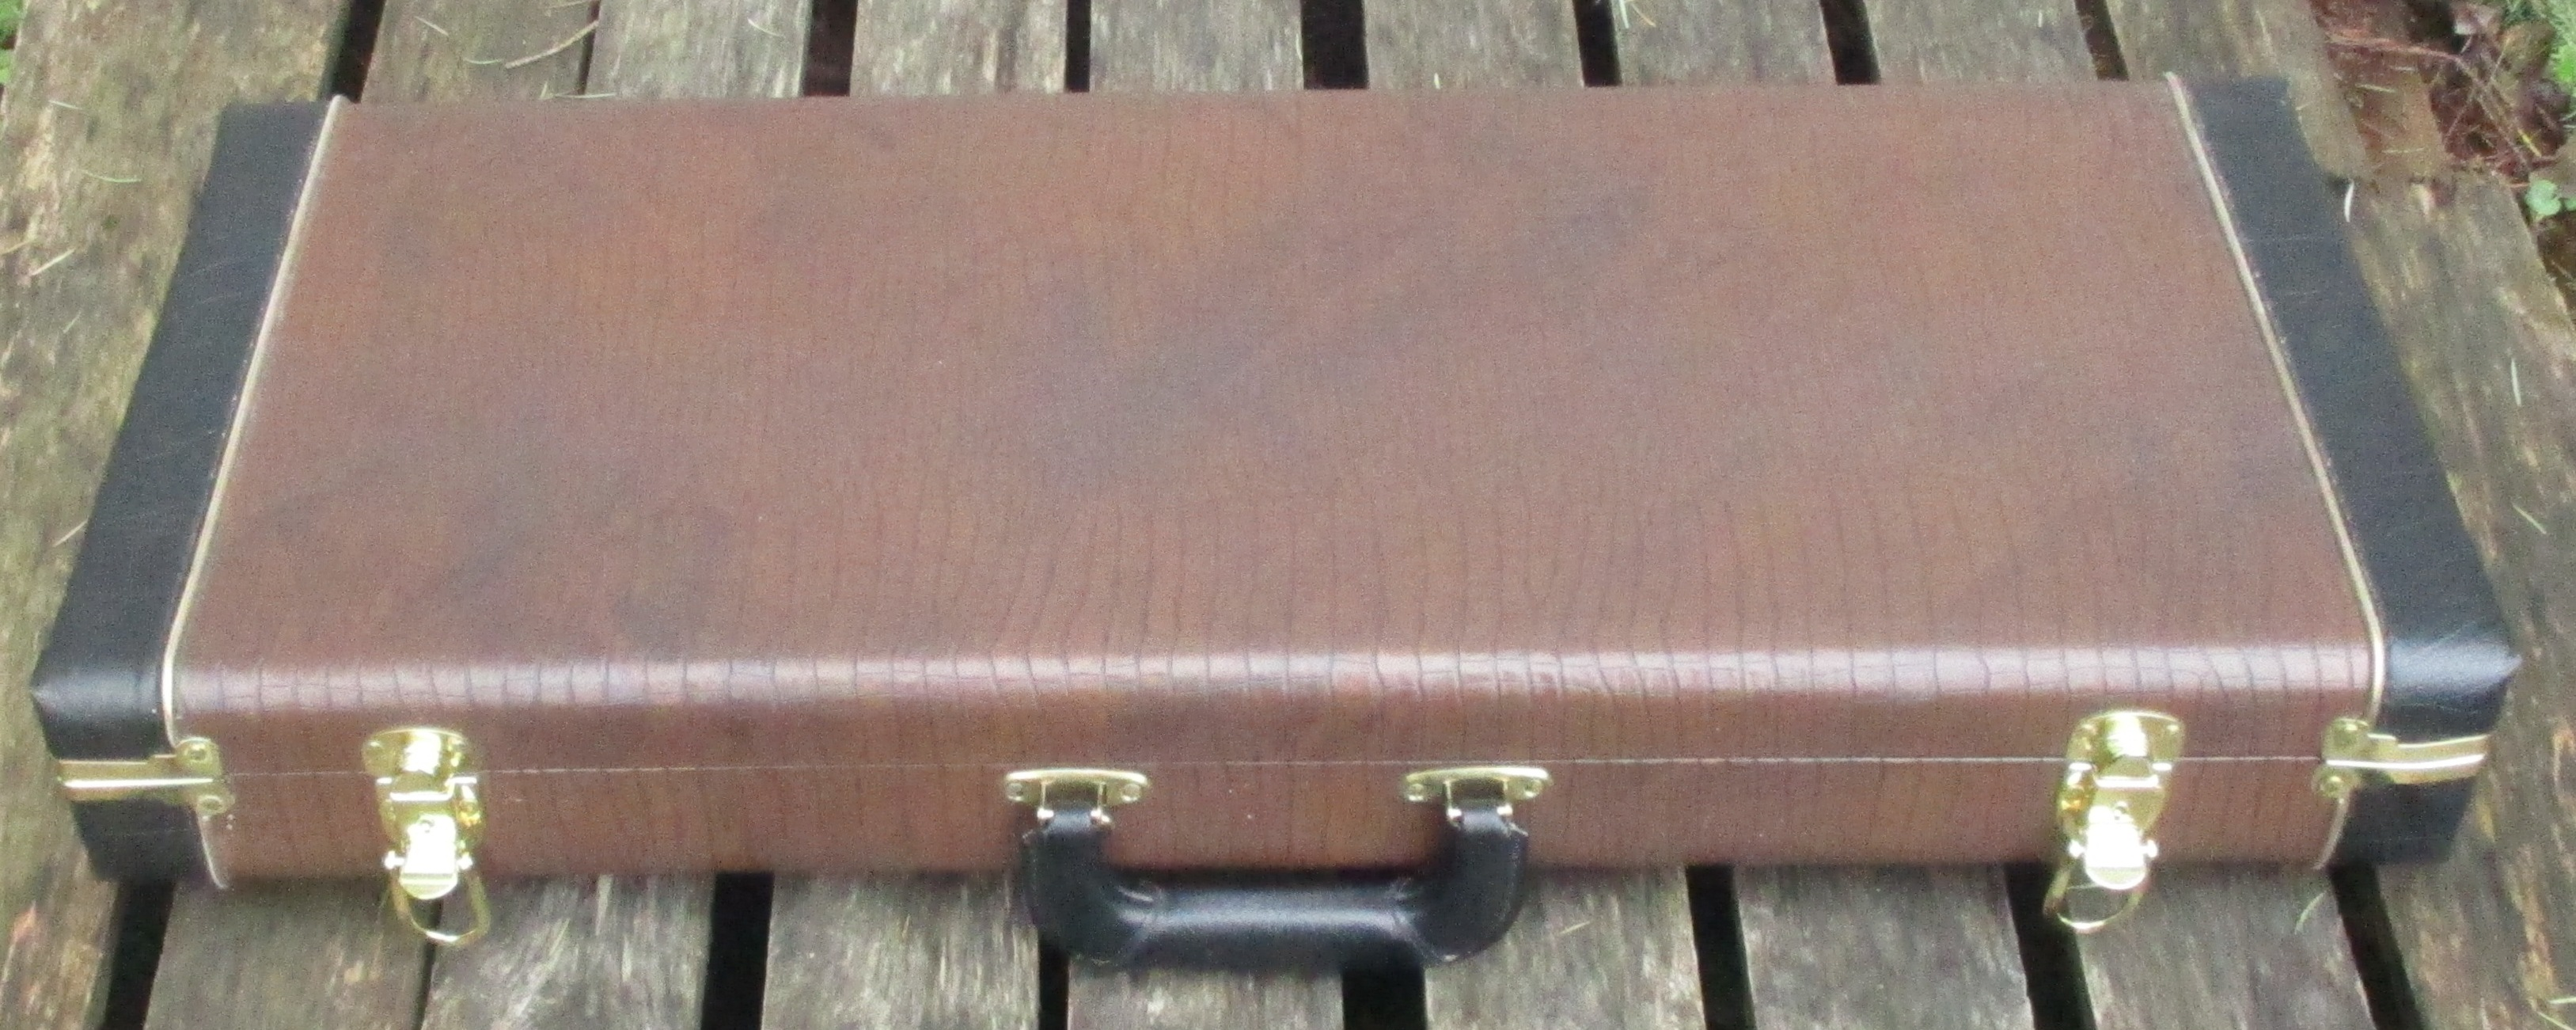 Brown gator case